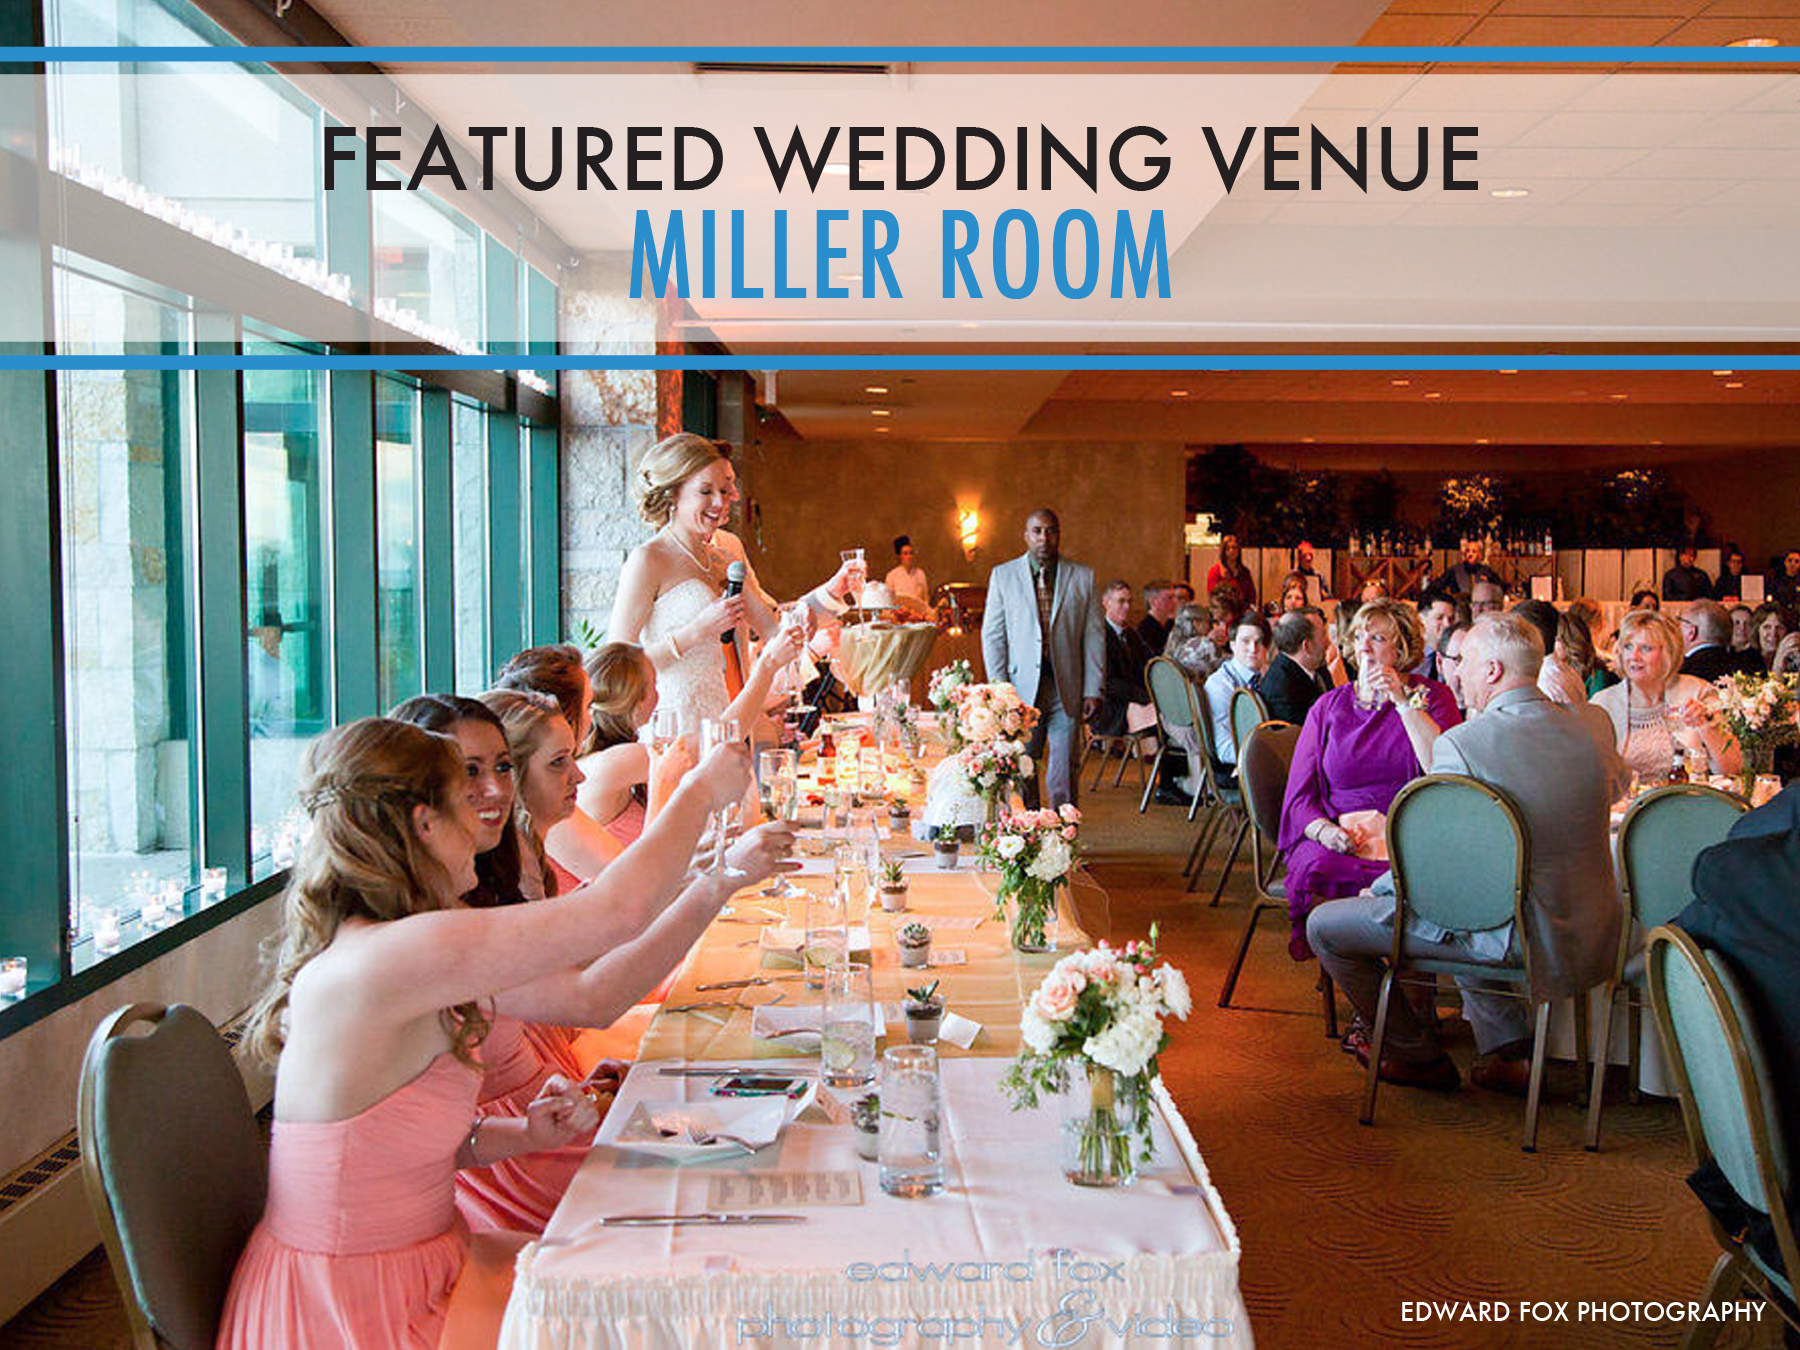 With Picturesque Views Of Lake Michigan And The Surrounding Gardens Miller Room Is An Excellent Milwaukee Venue For Large Weddings